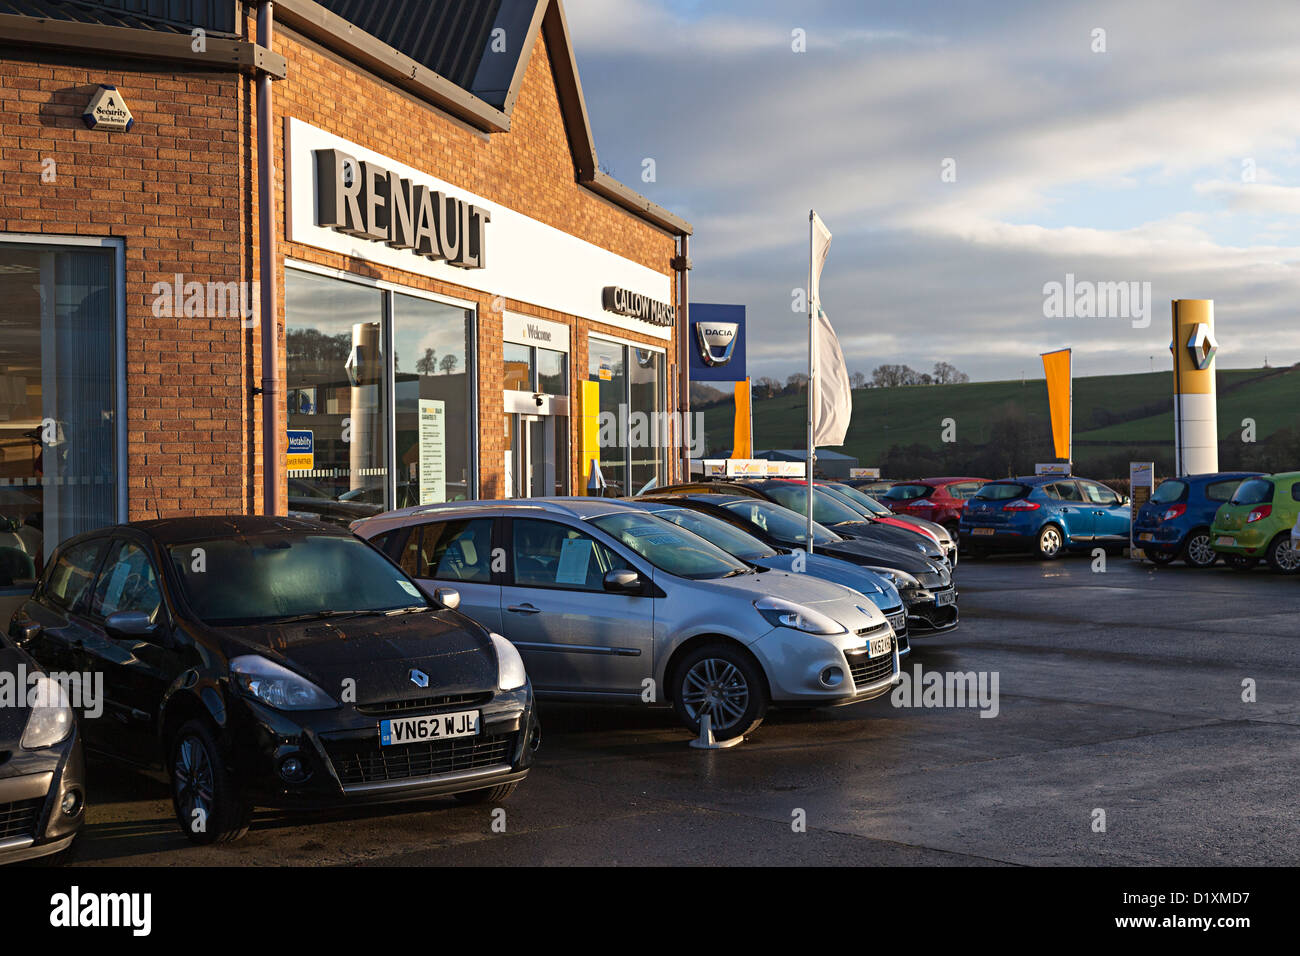 Renault Garage Stock Photos Renault Garage Stock Images Alamy